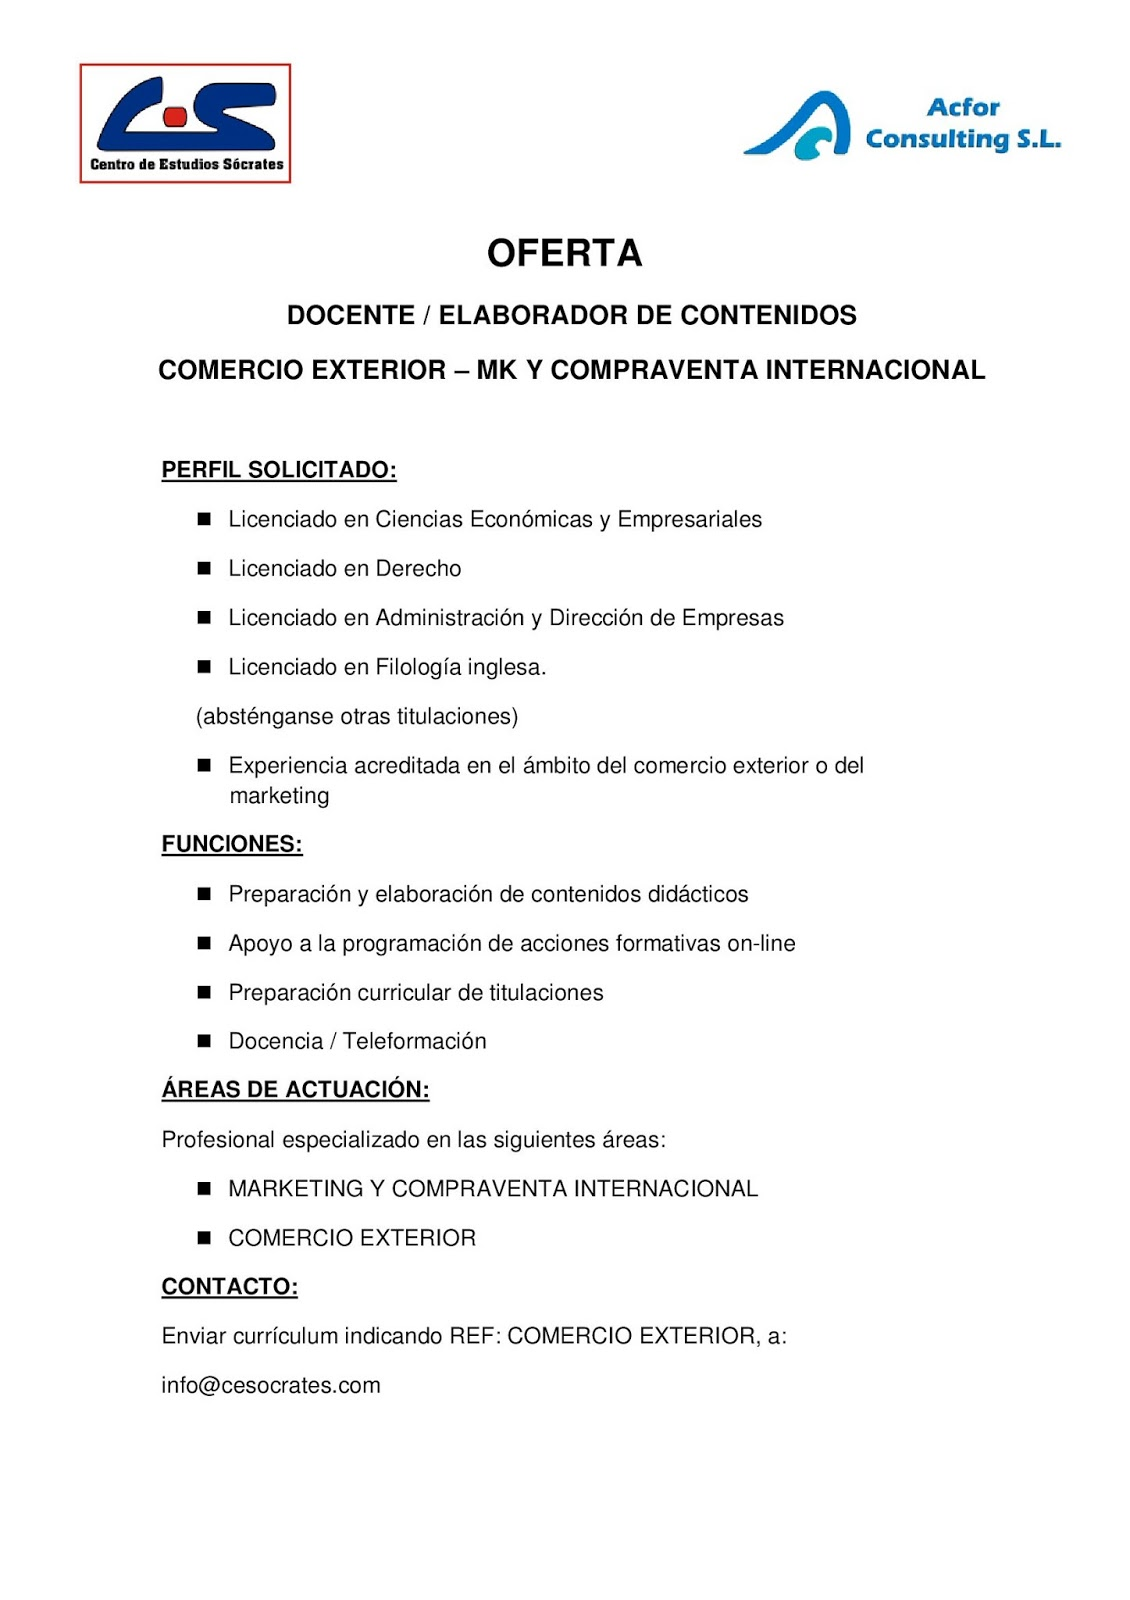 You are not authorized to view this page iis ver gratis for Ofertas de empleo banco exterior